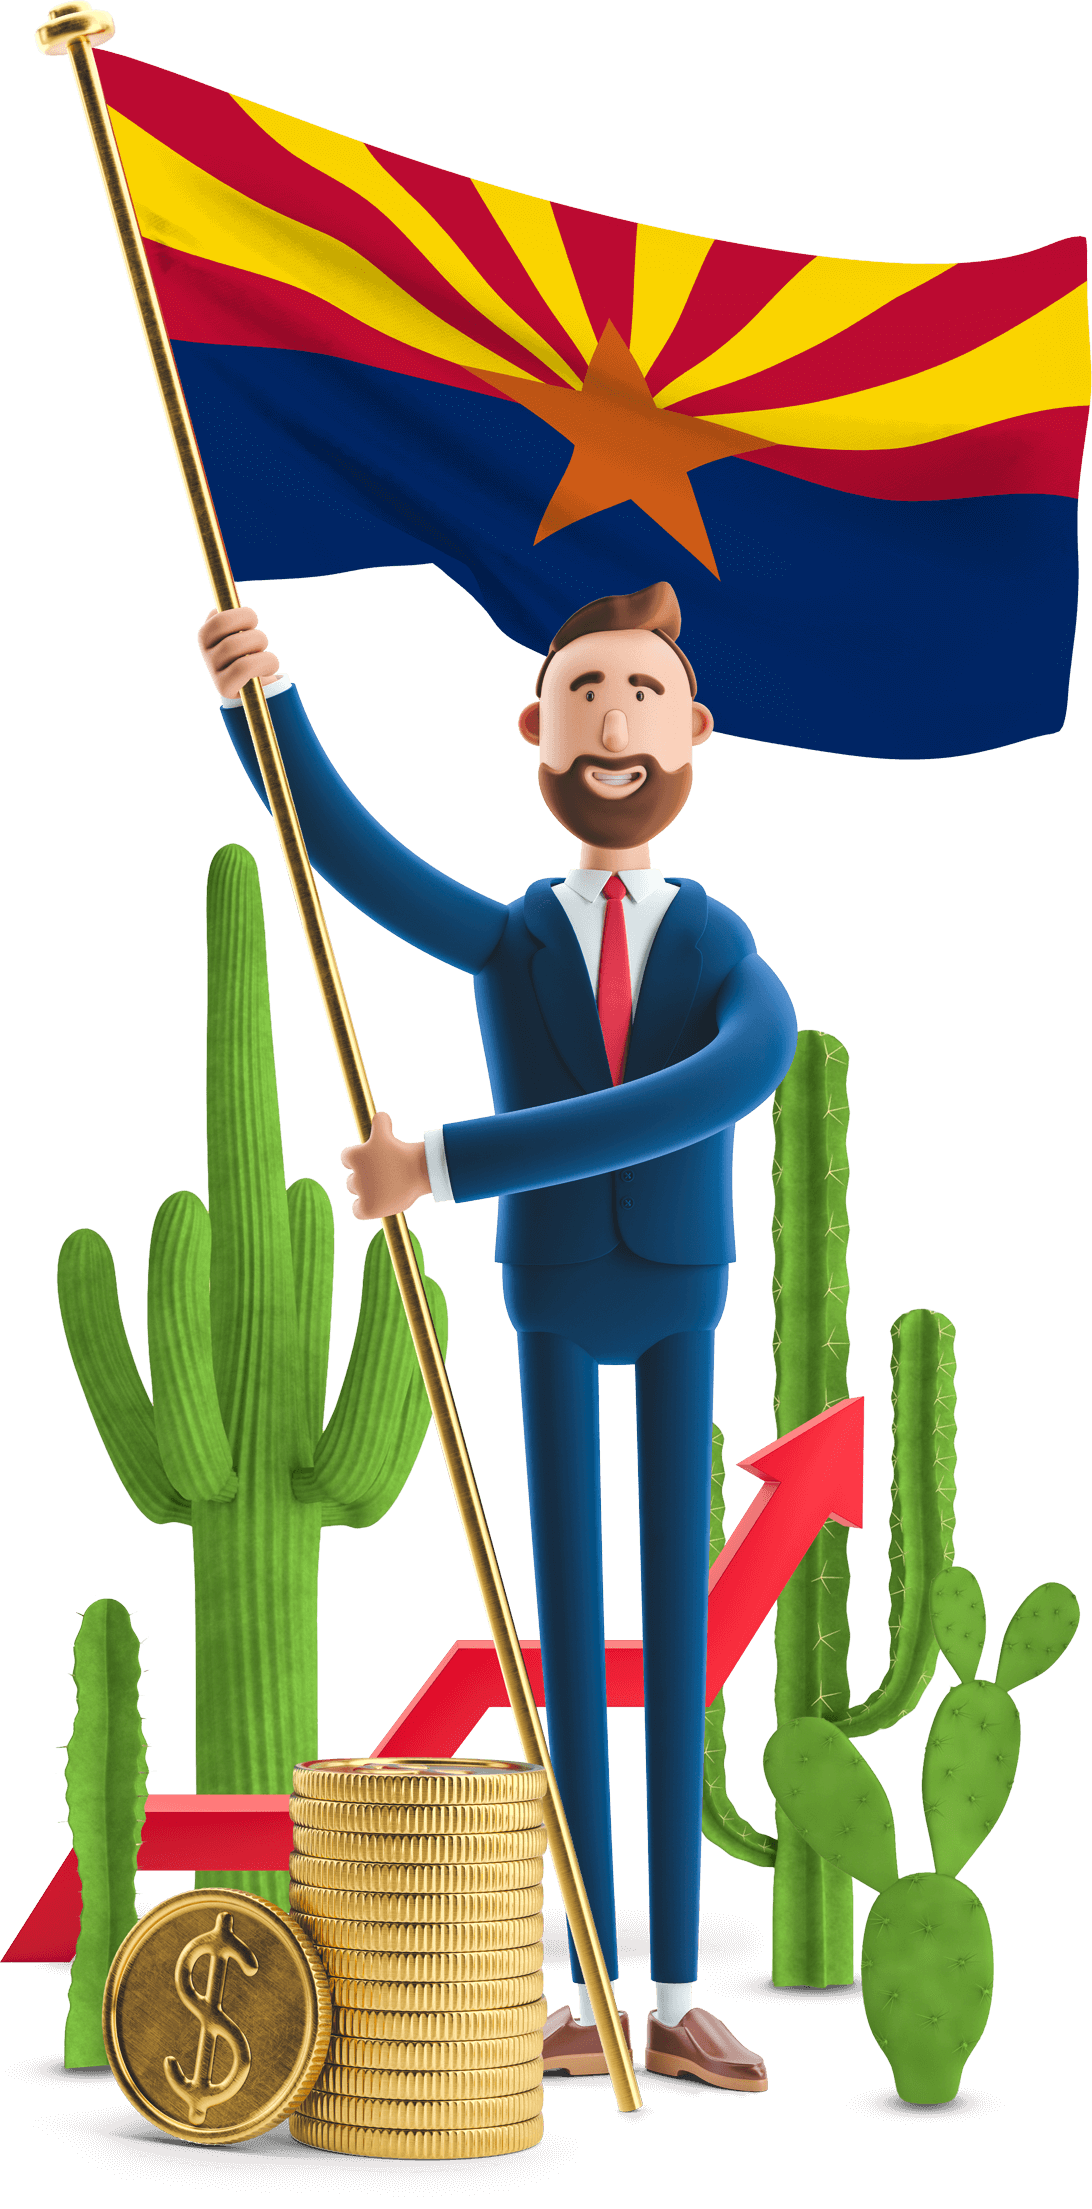 Arizona flag held by MetCredit USA businessman who's standing beside several cacti